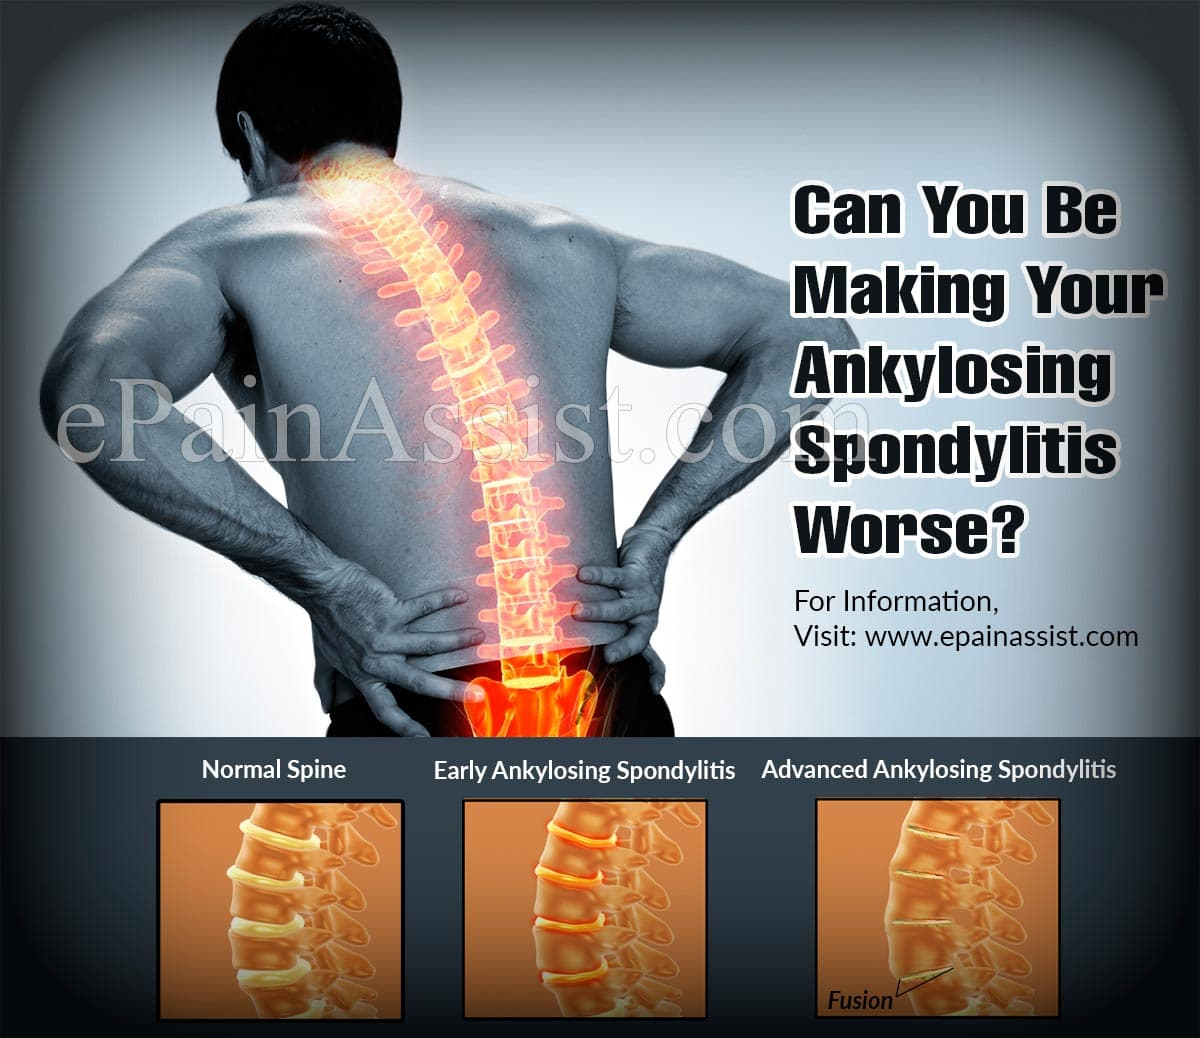 Can You Be Making Your Ankylosing Spondylitis Worse?